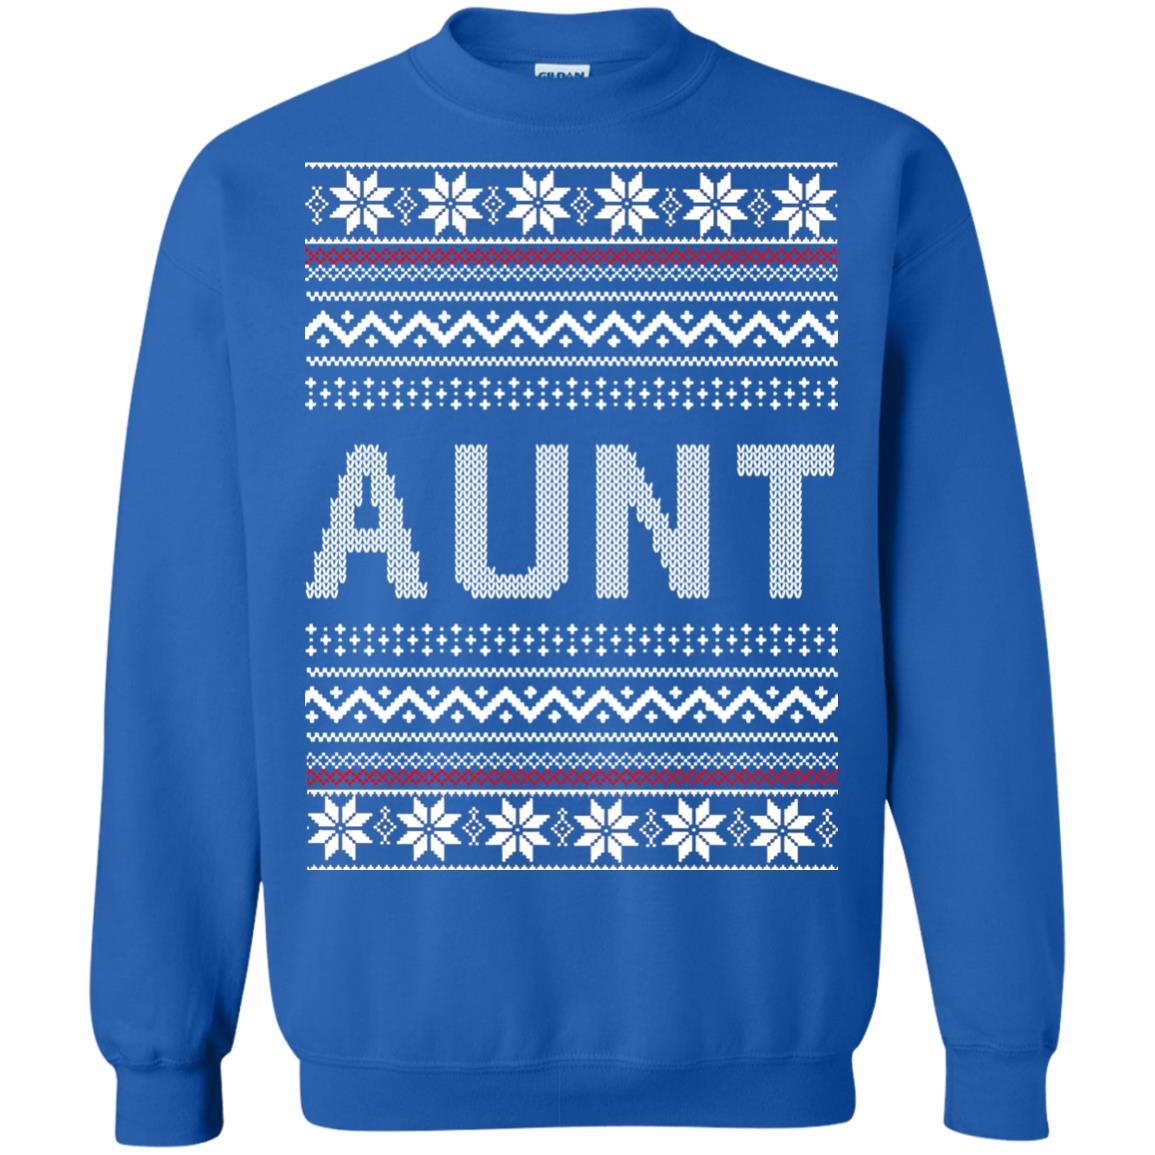 image 4621 - Aunt Ugly Christmas Sweater, Shirt, Hoodie